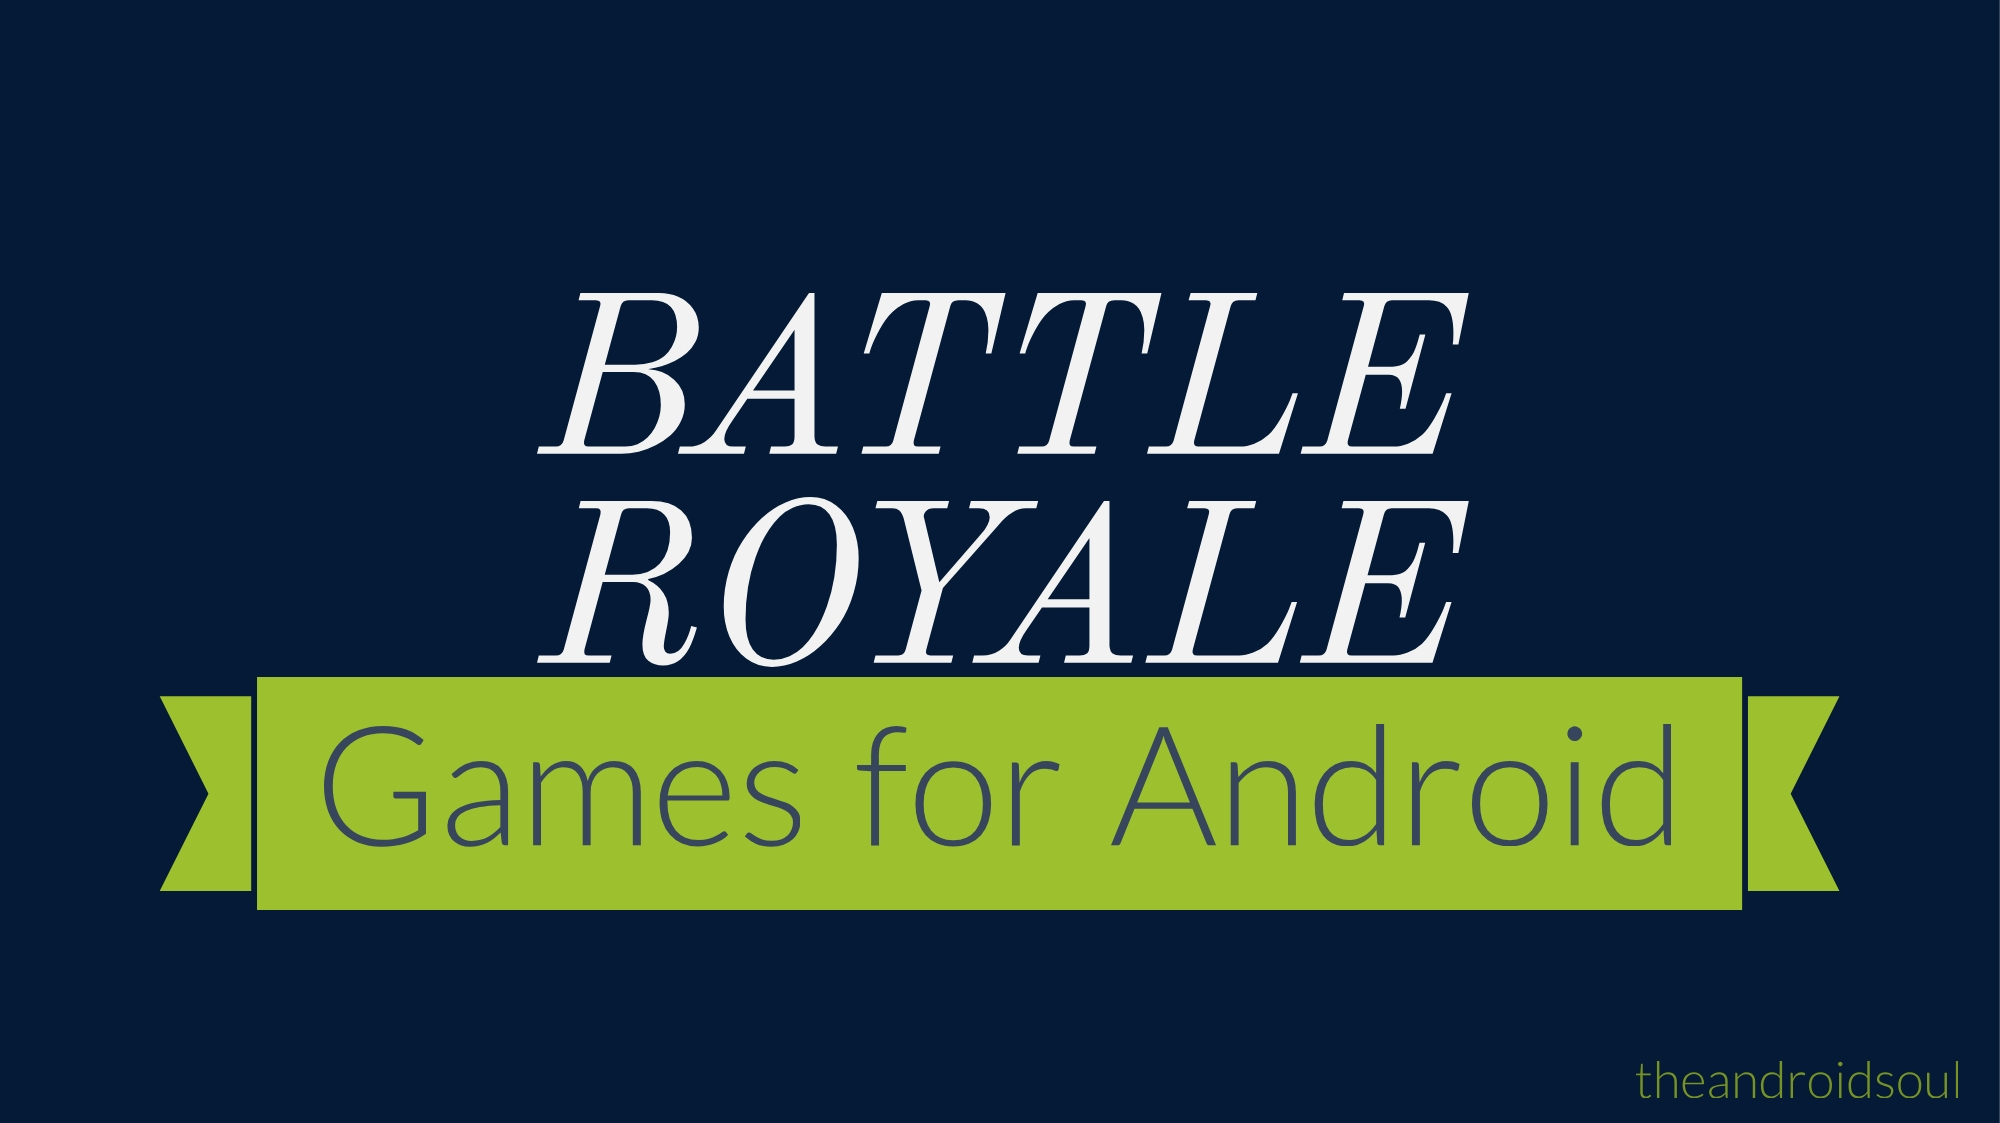 battle royale games for android